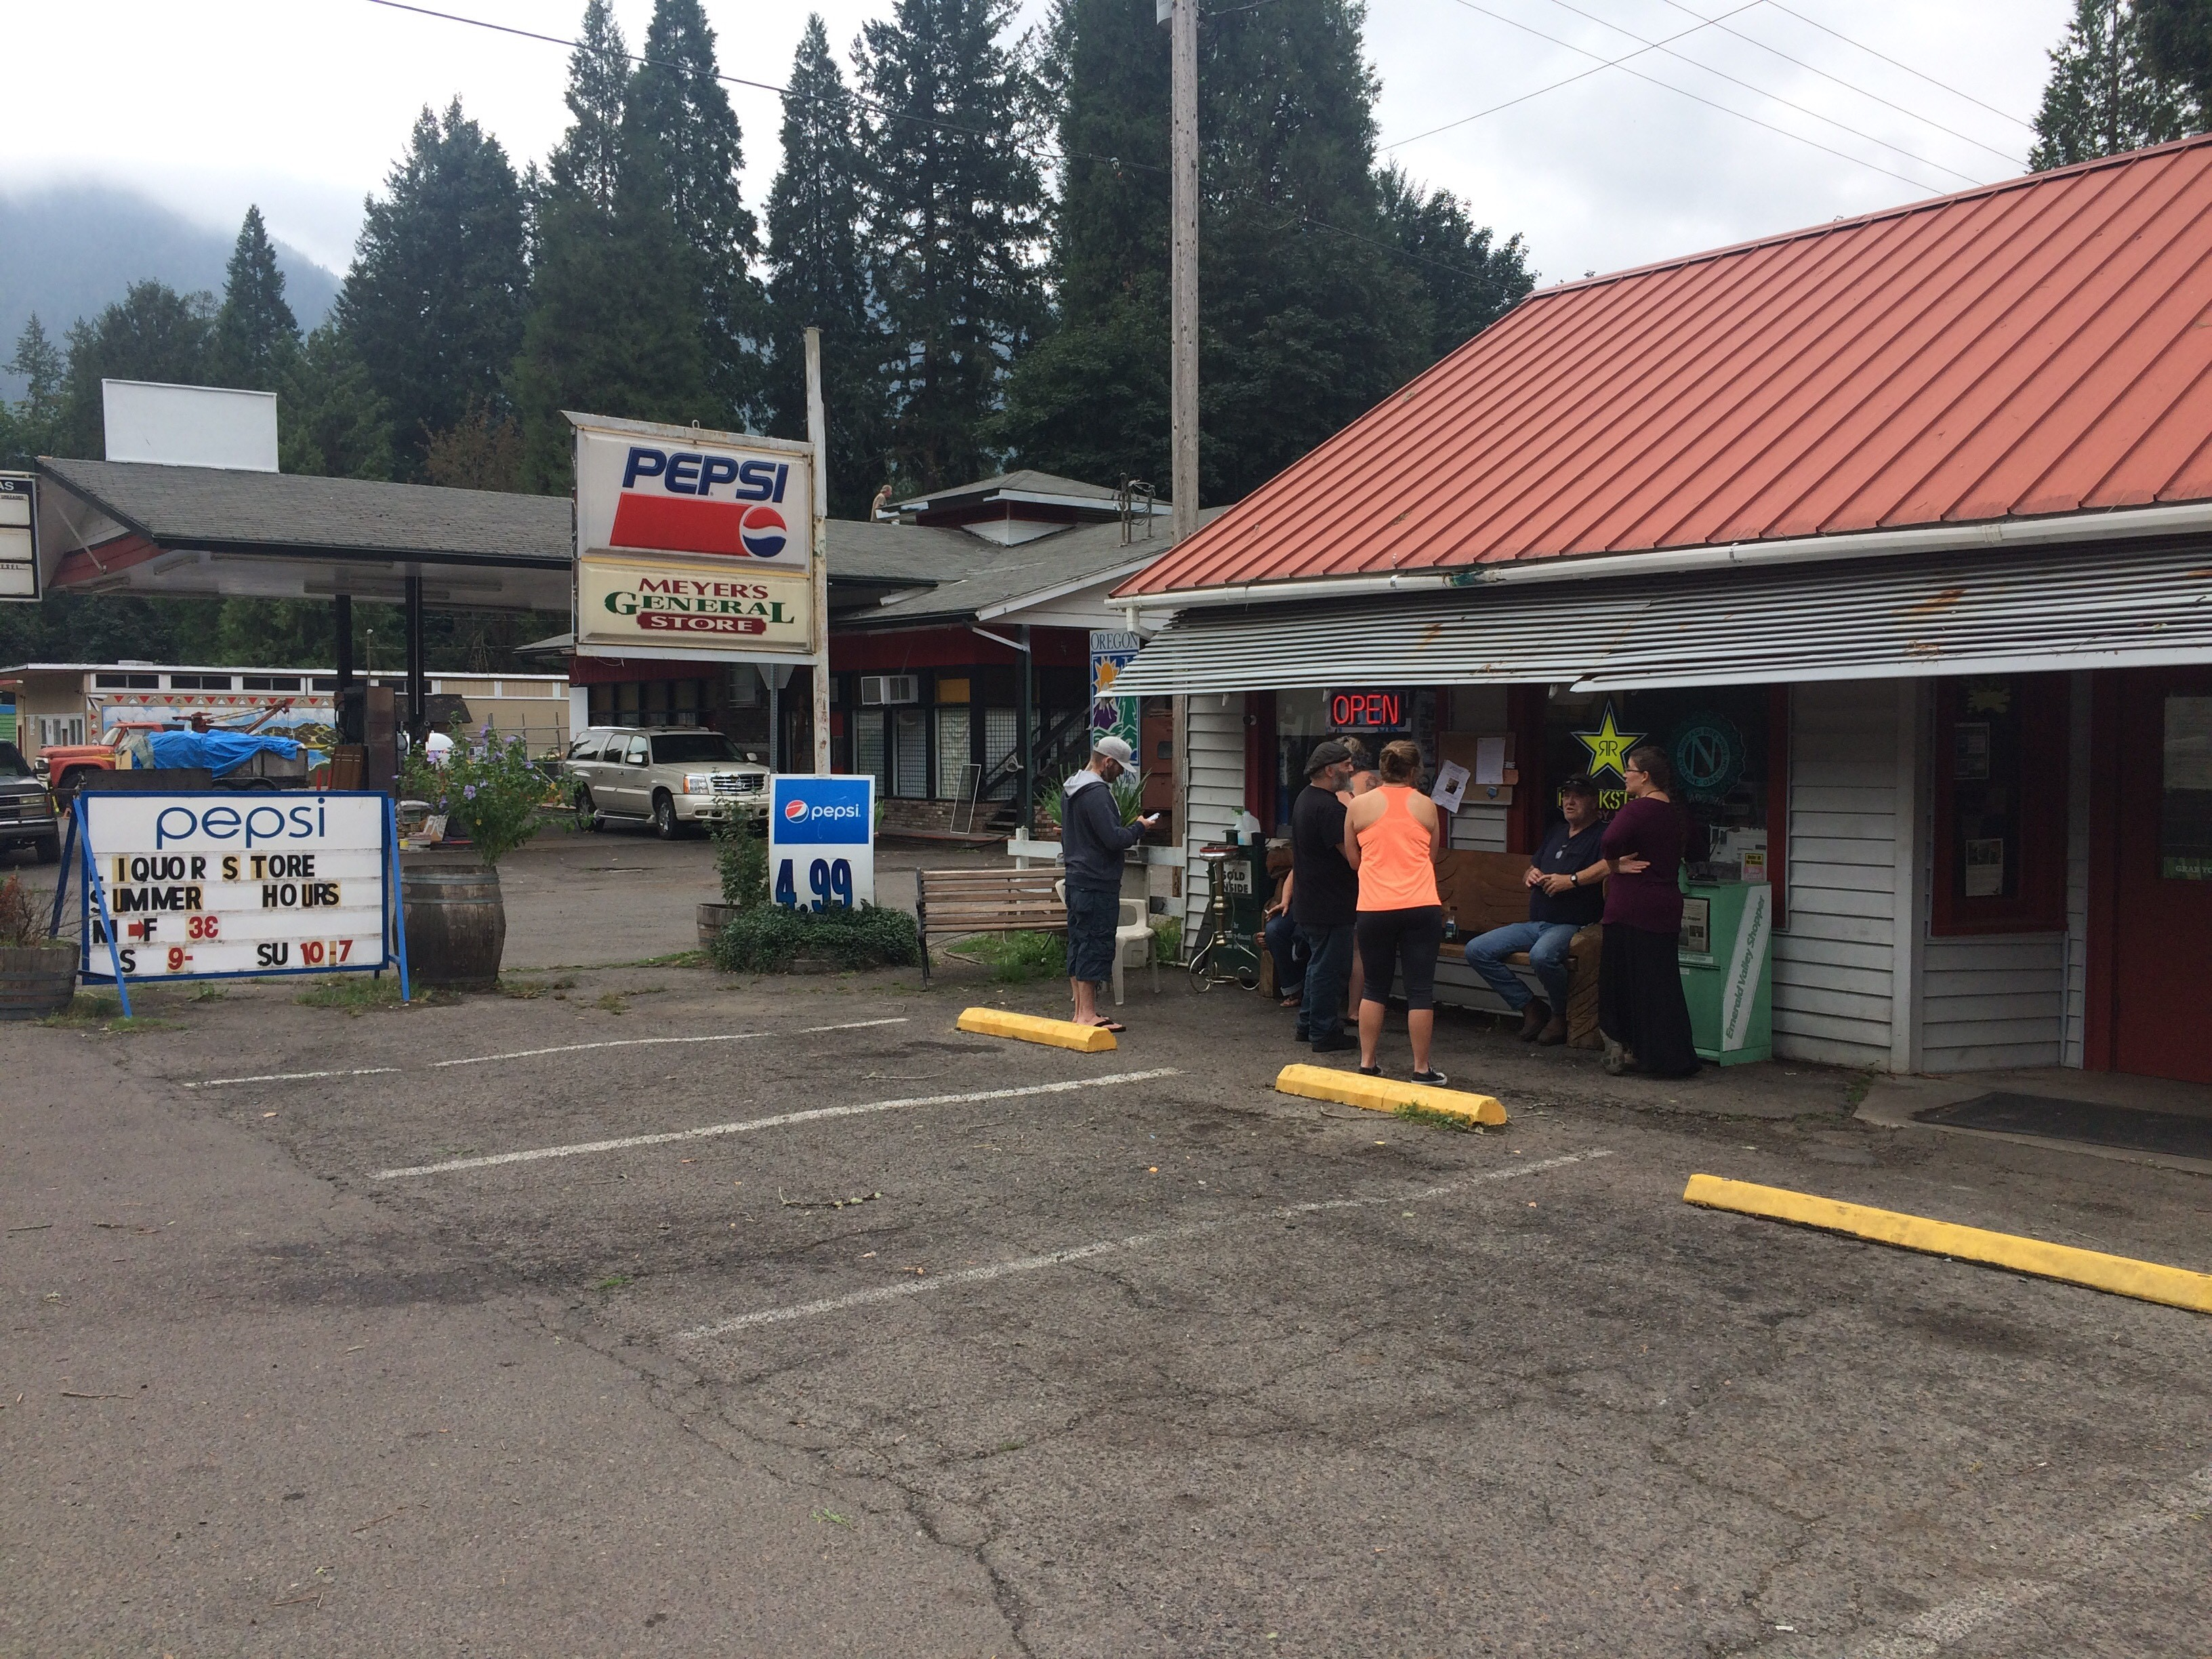 Community members concerned about looting during evacuations on September 8th, 2017 at Blue River Road. in Vida, Ore.